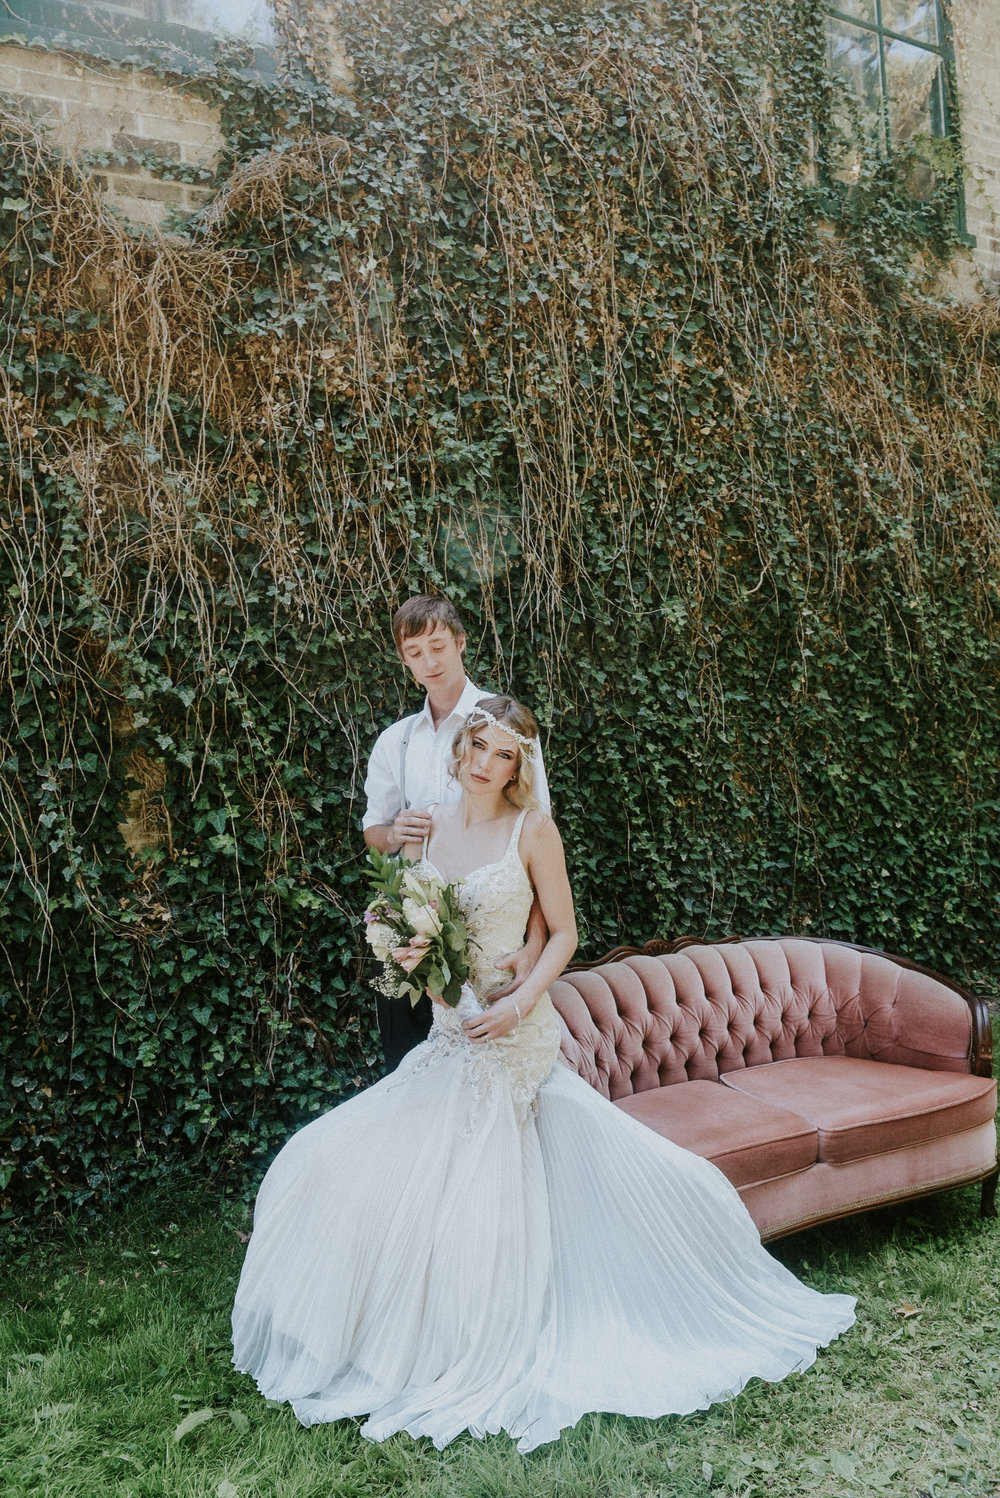 Pearl beaded wedding dress pink velvet sofa styled shoot